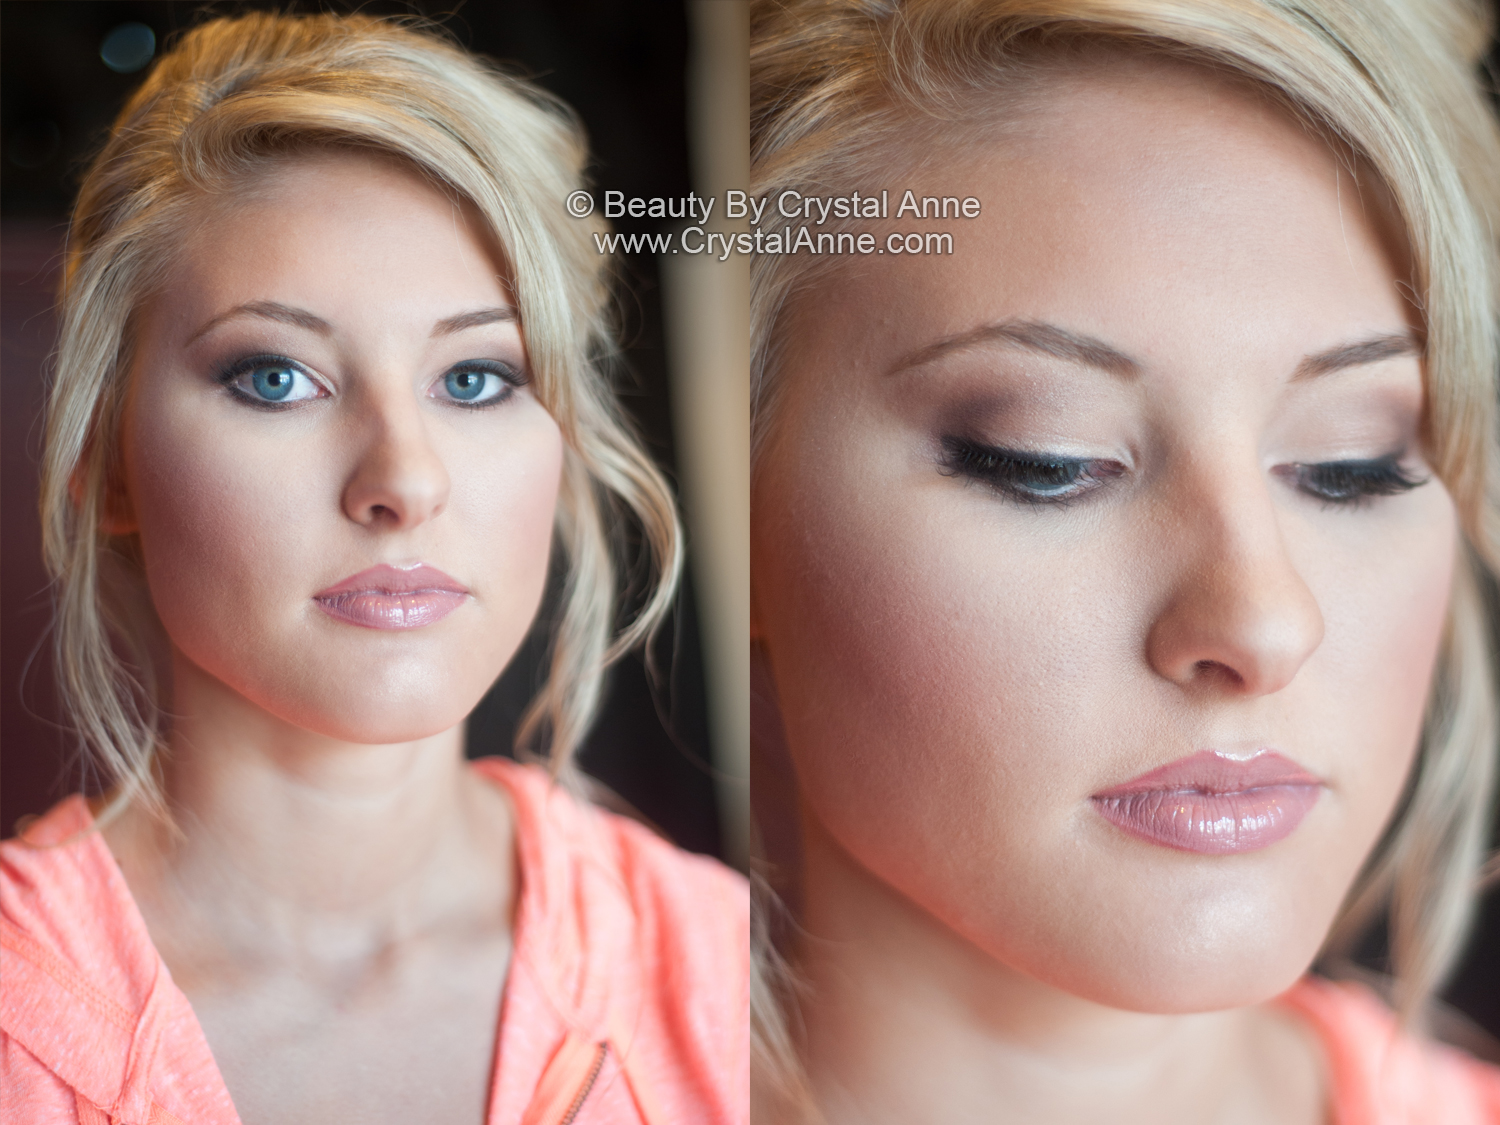 Hair And Makeup For Prom In Sugarland Tx Houston Hair Extensions